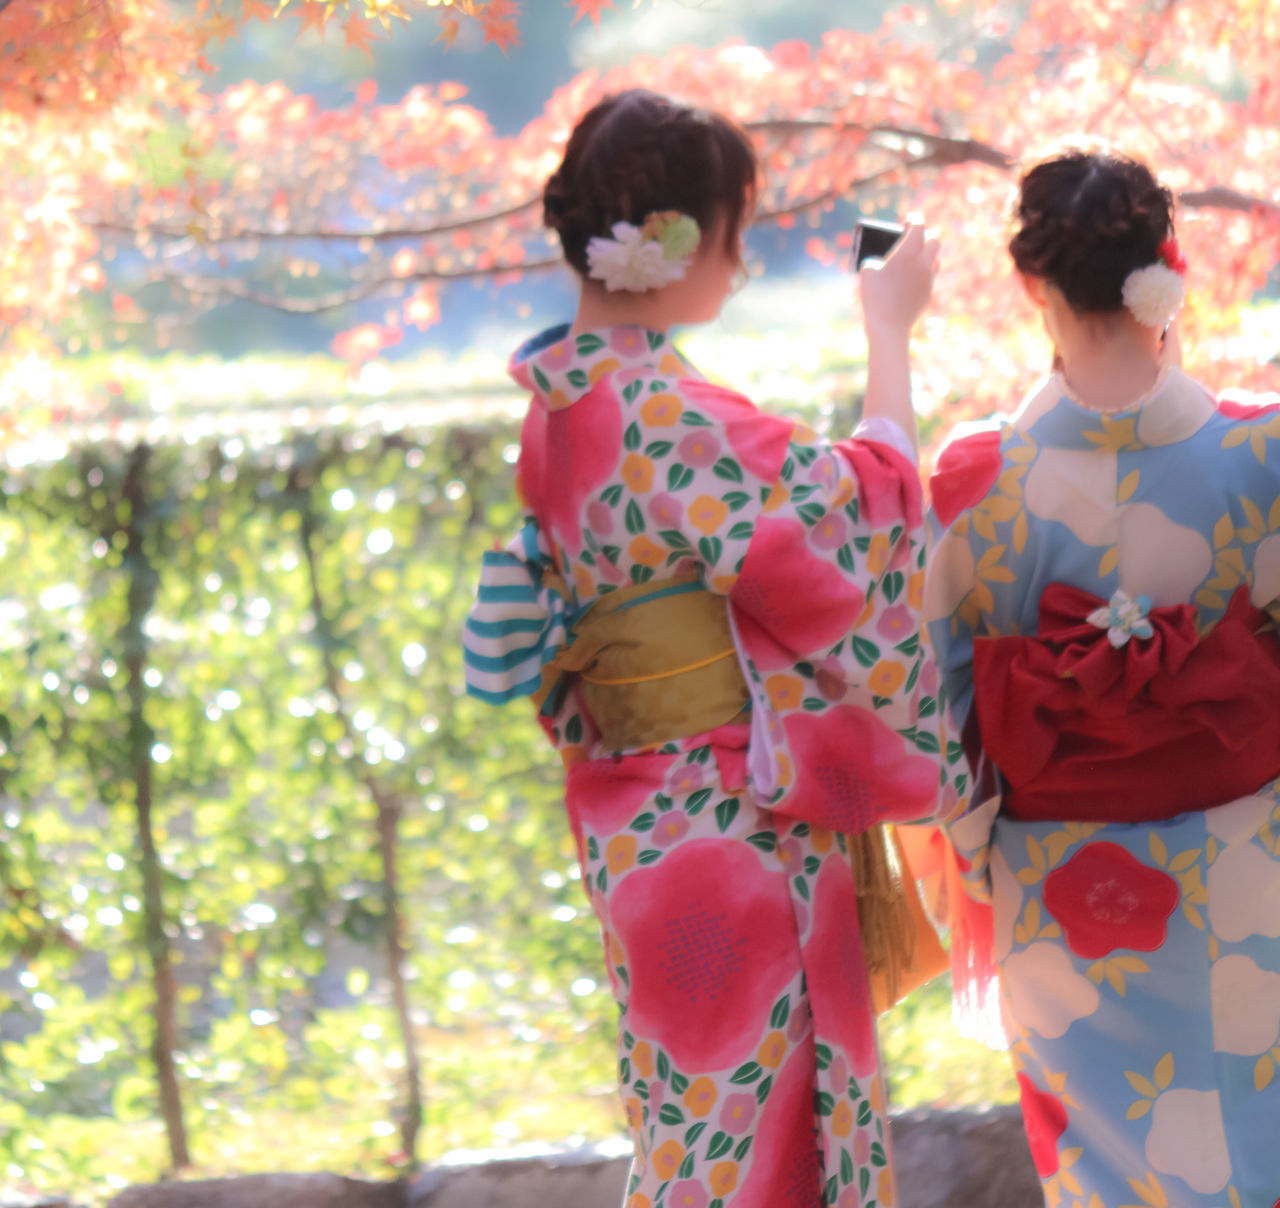 rear view, real people, kimono, two people, leisure activity, togetherness, traditional clothing, lifestyles, day, women, standing, outdoors, celebration, bonding, red, love, sunlight, holding, childhood, men, tree, friendship, flower, adult, people